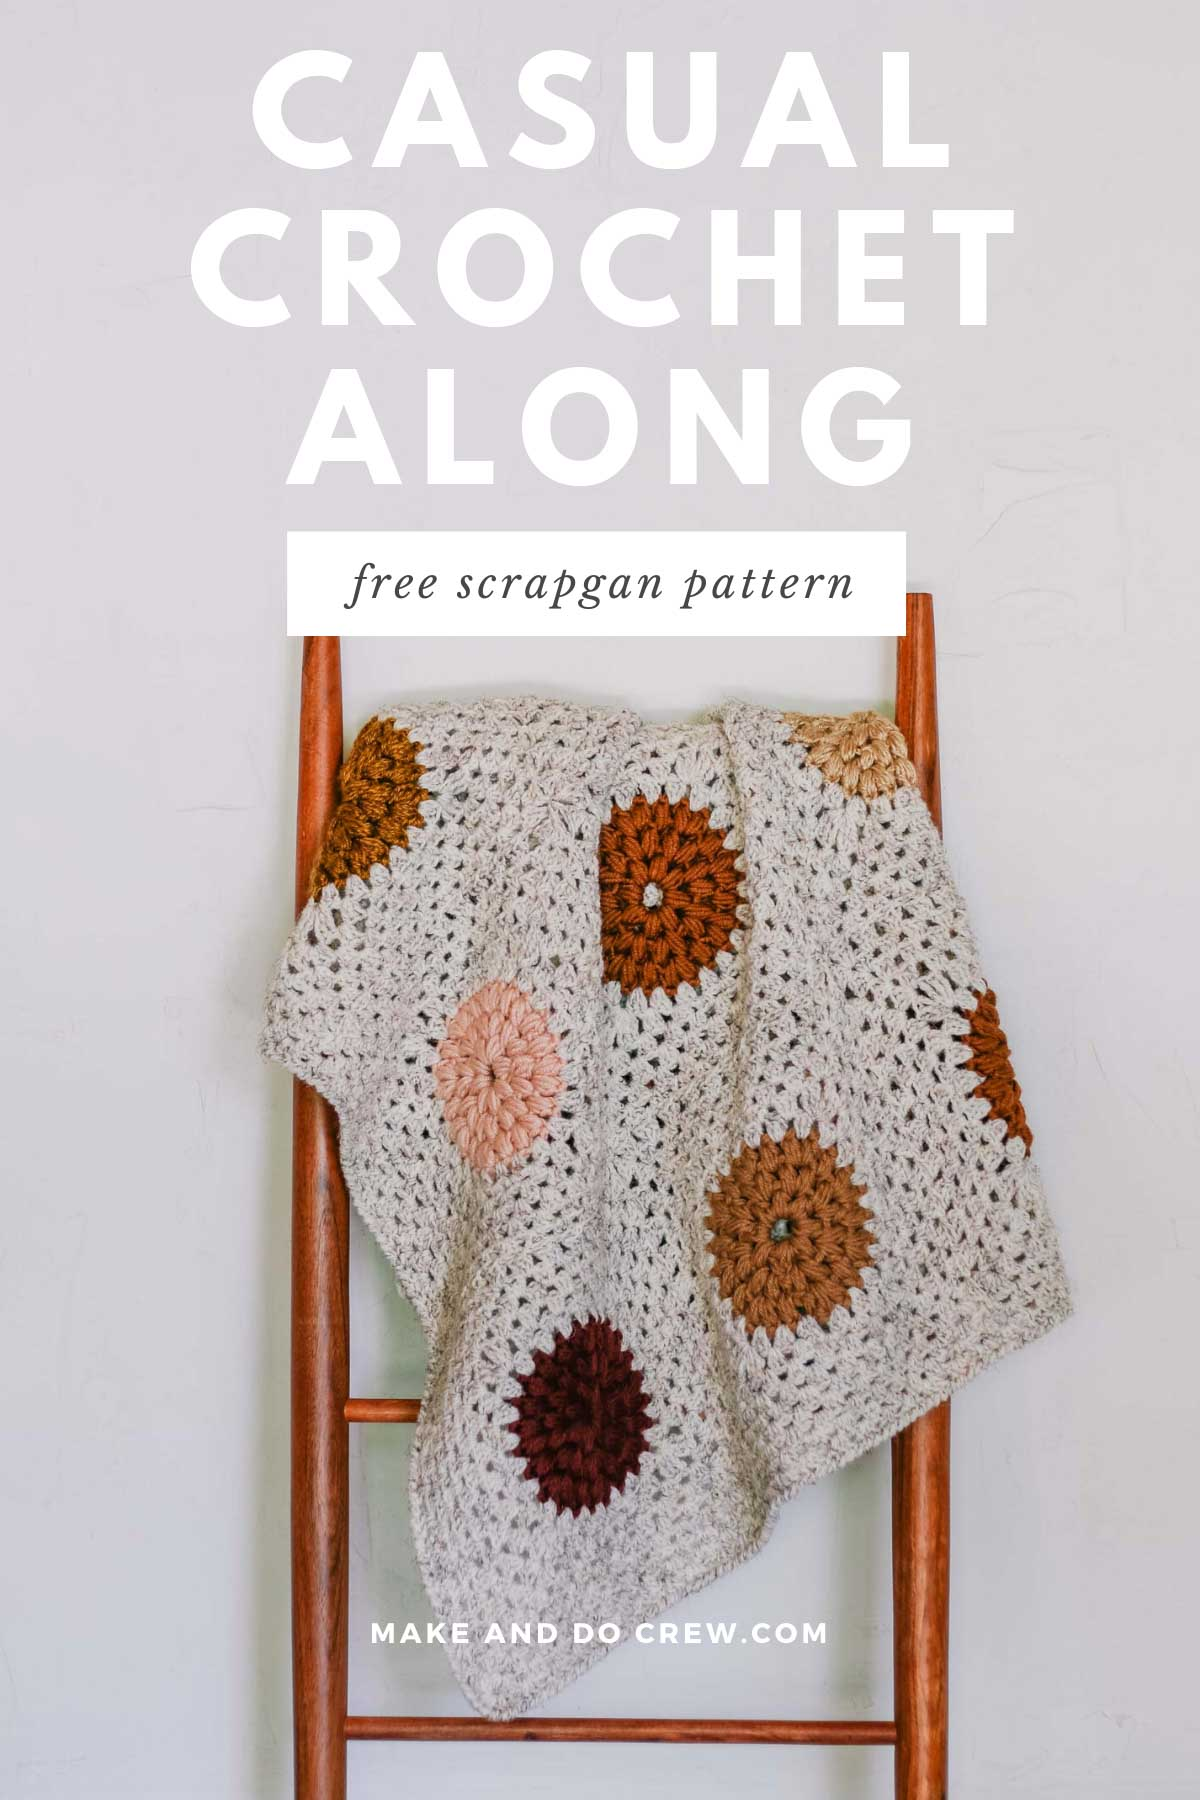 A join as you go crochet granny square blanket draped over a mid century modern ladder.